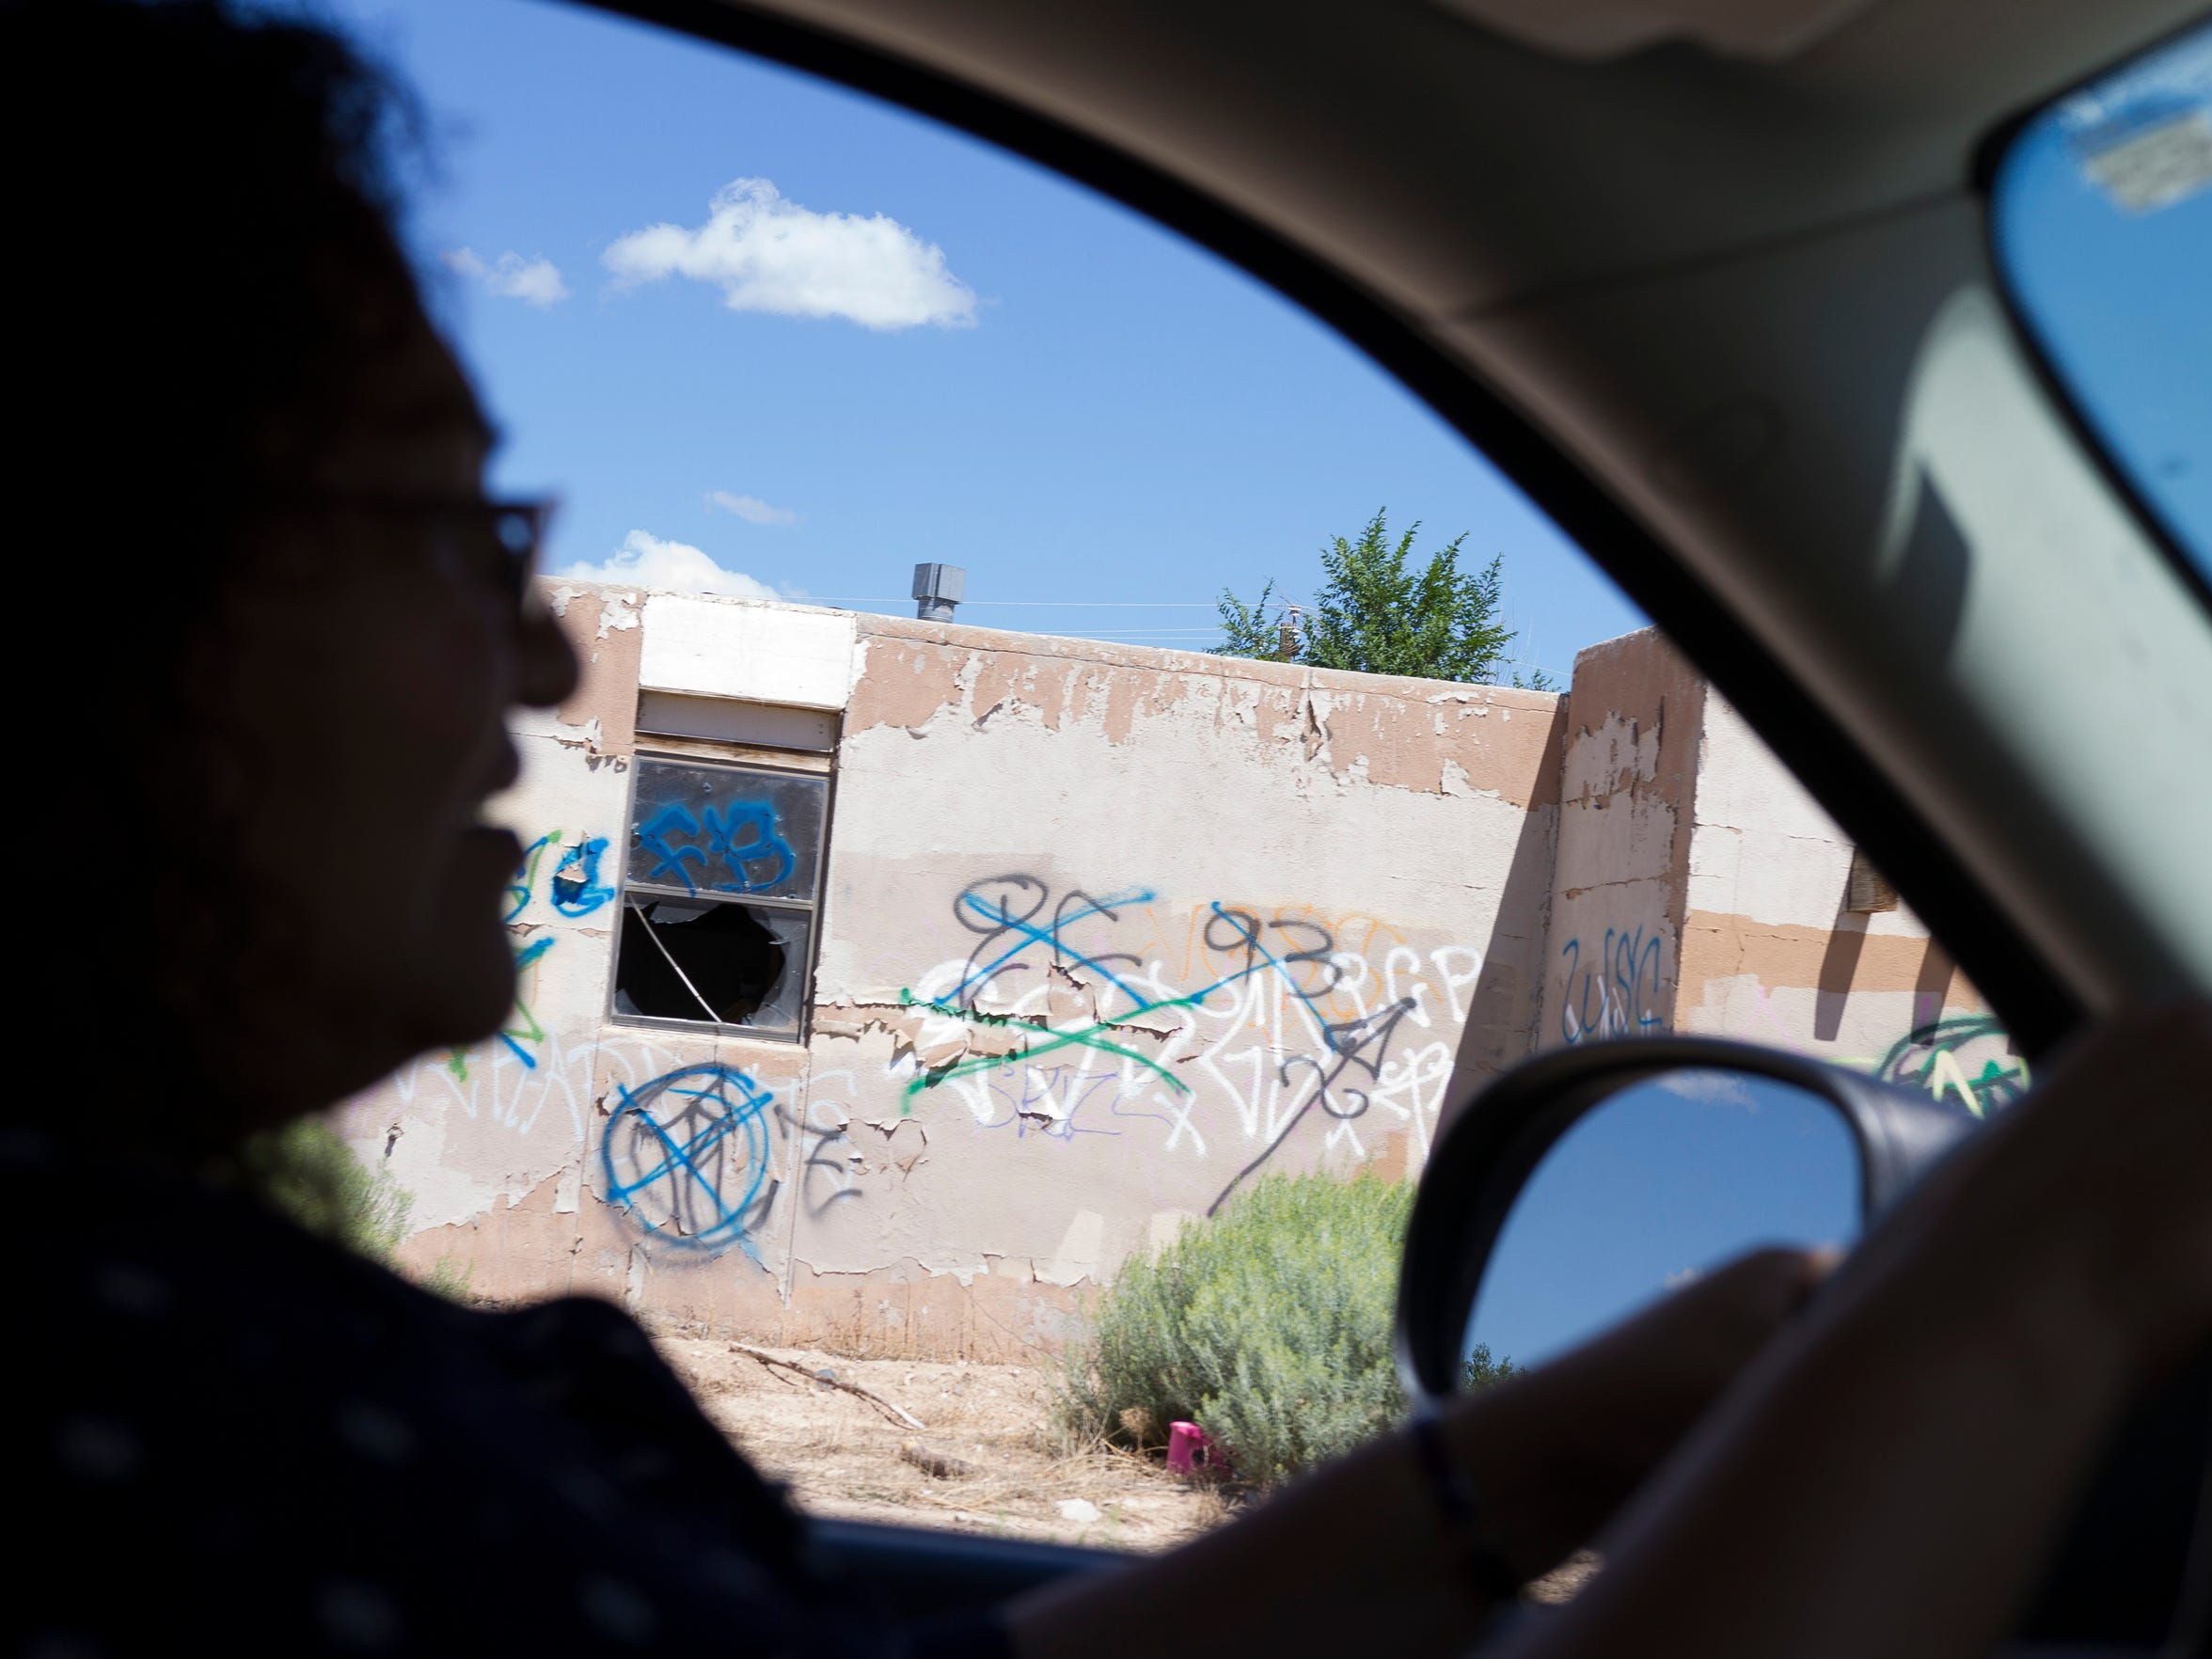 Dina Haven drives past abandoned buildings across the